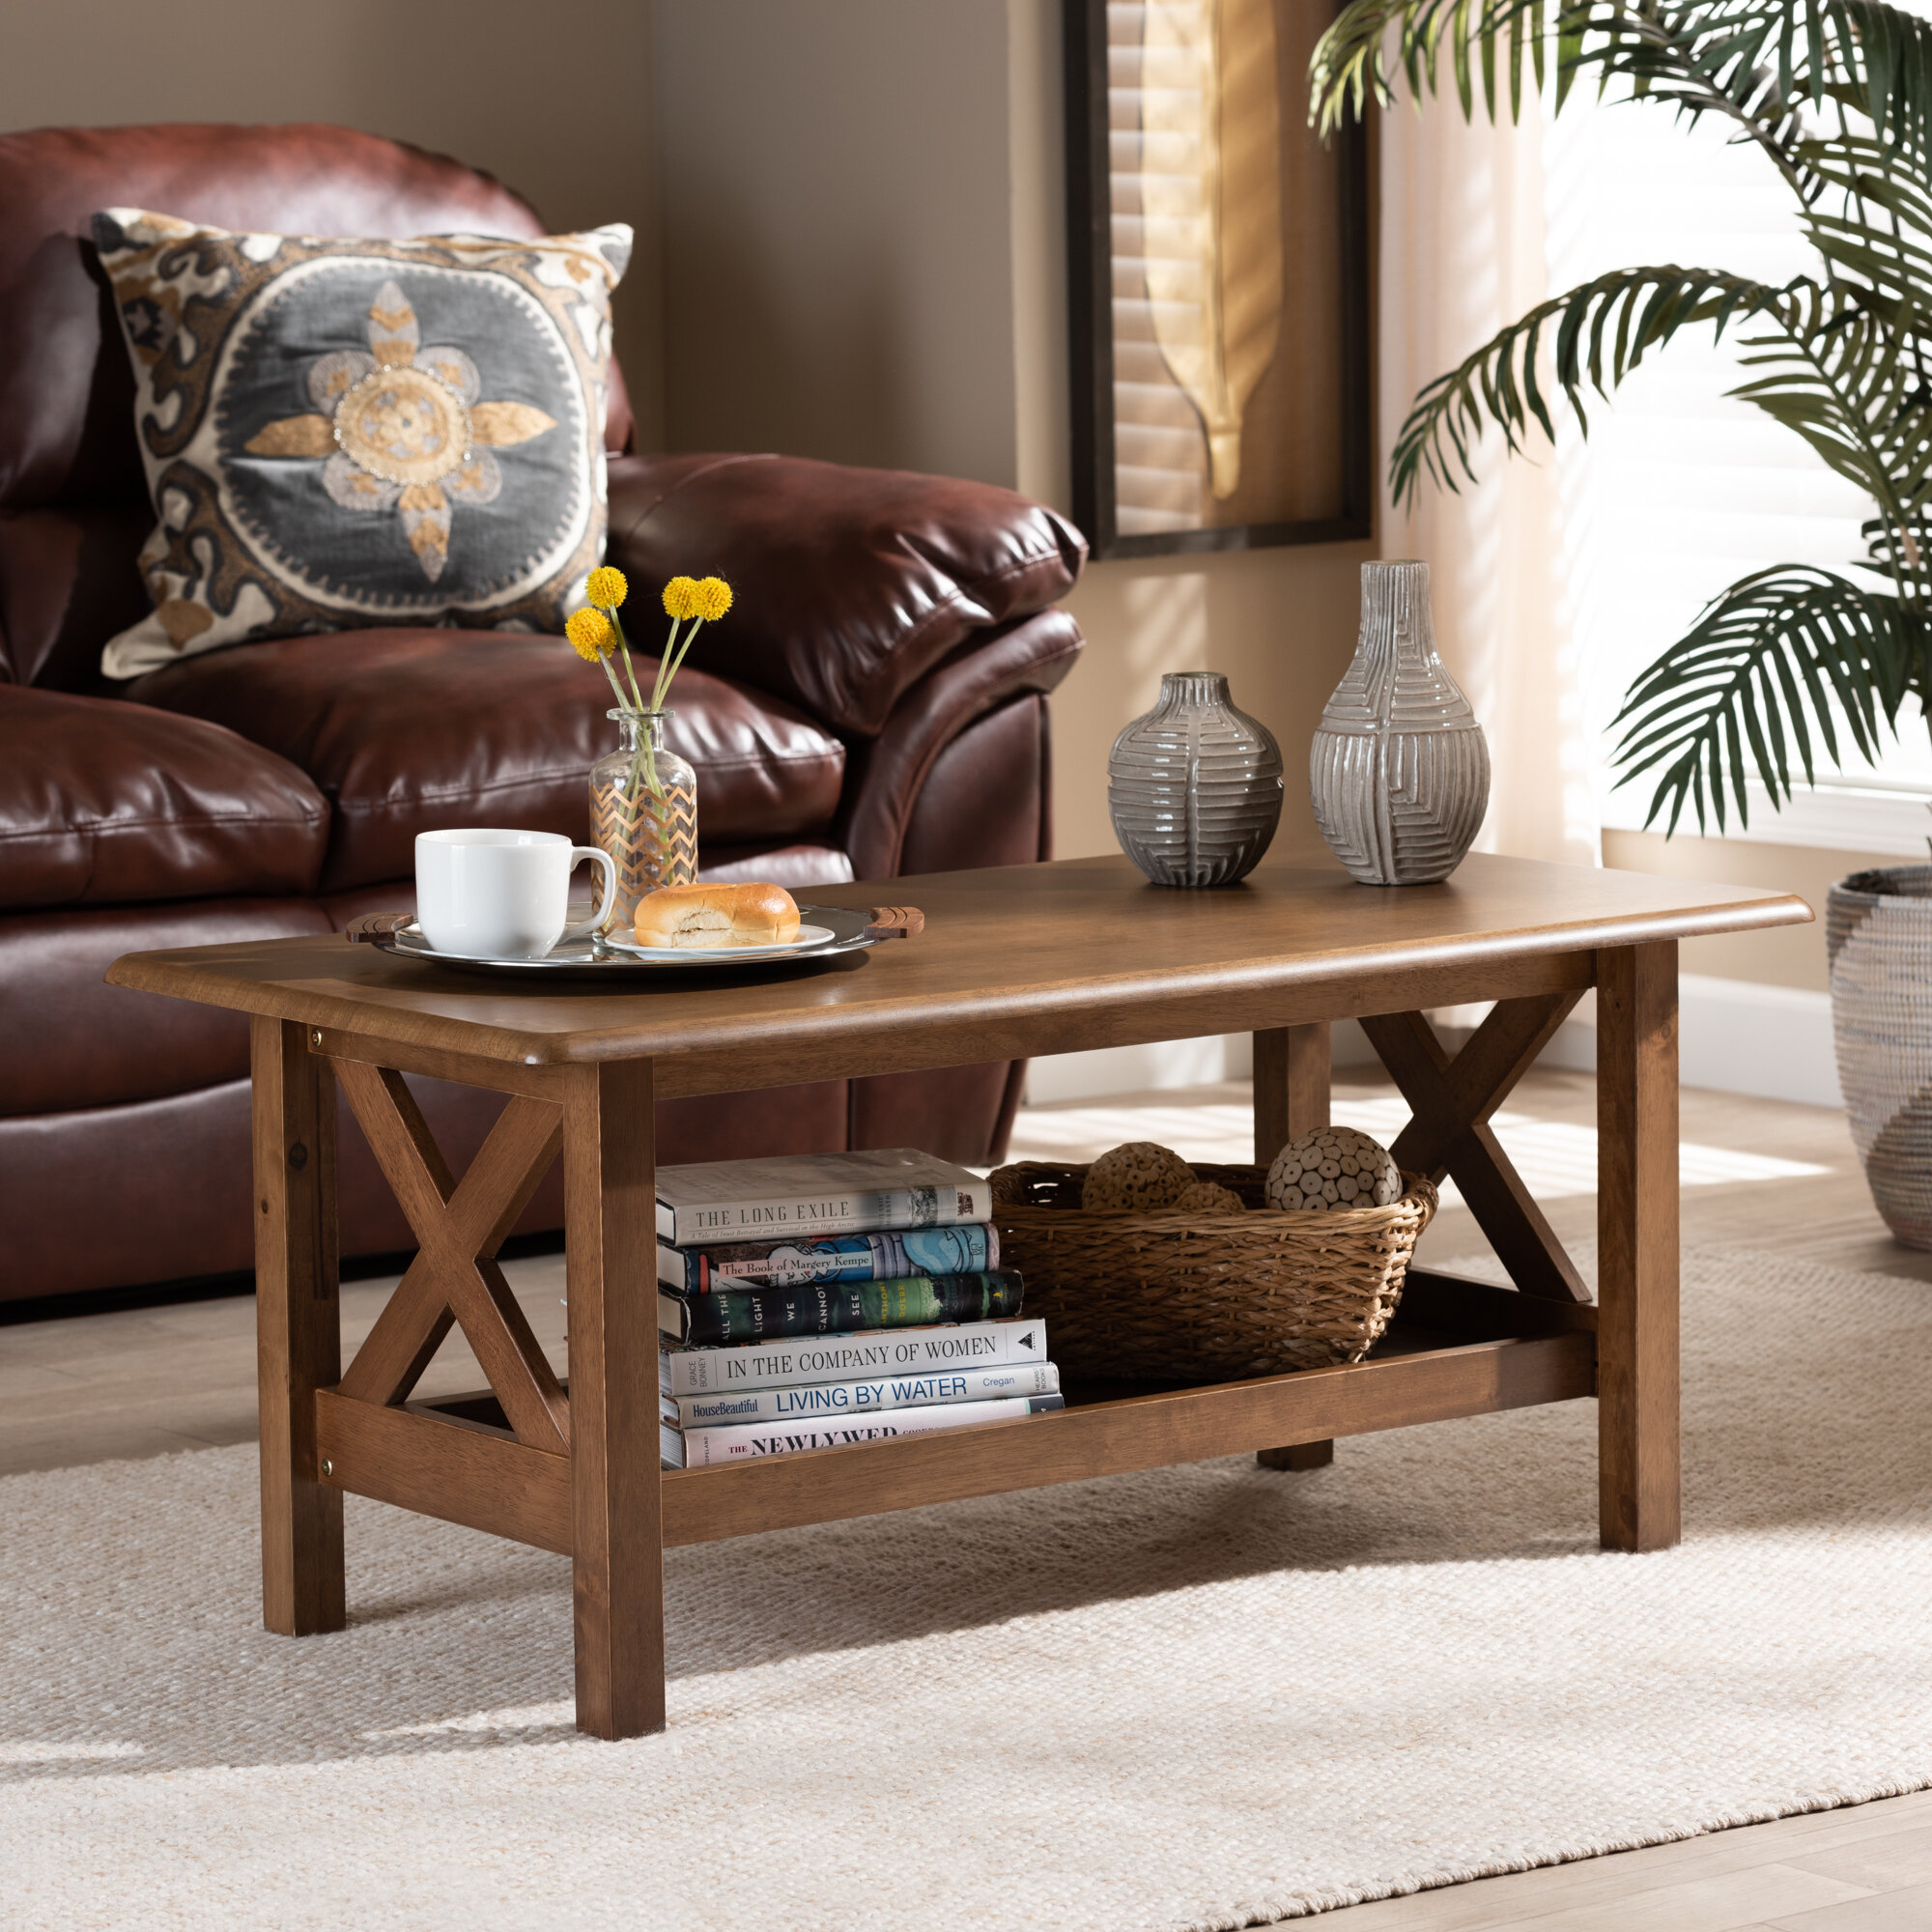 Ambiance Et Style Poitiers ackley coffee table